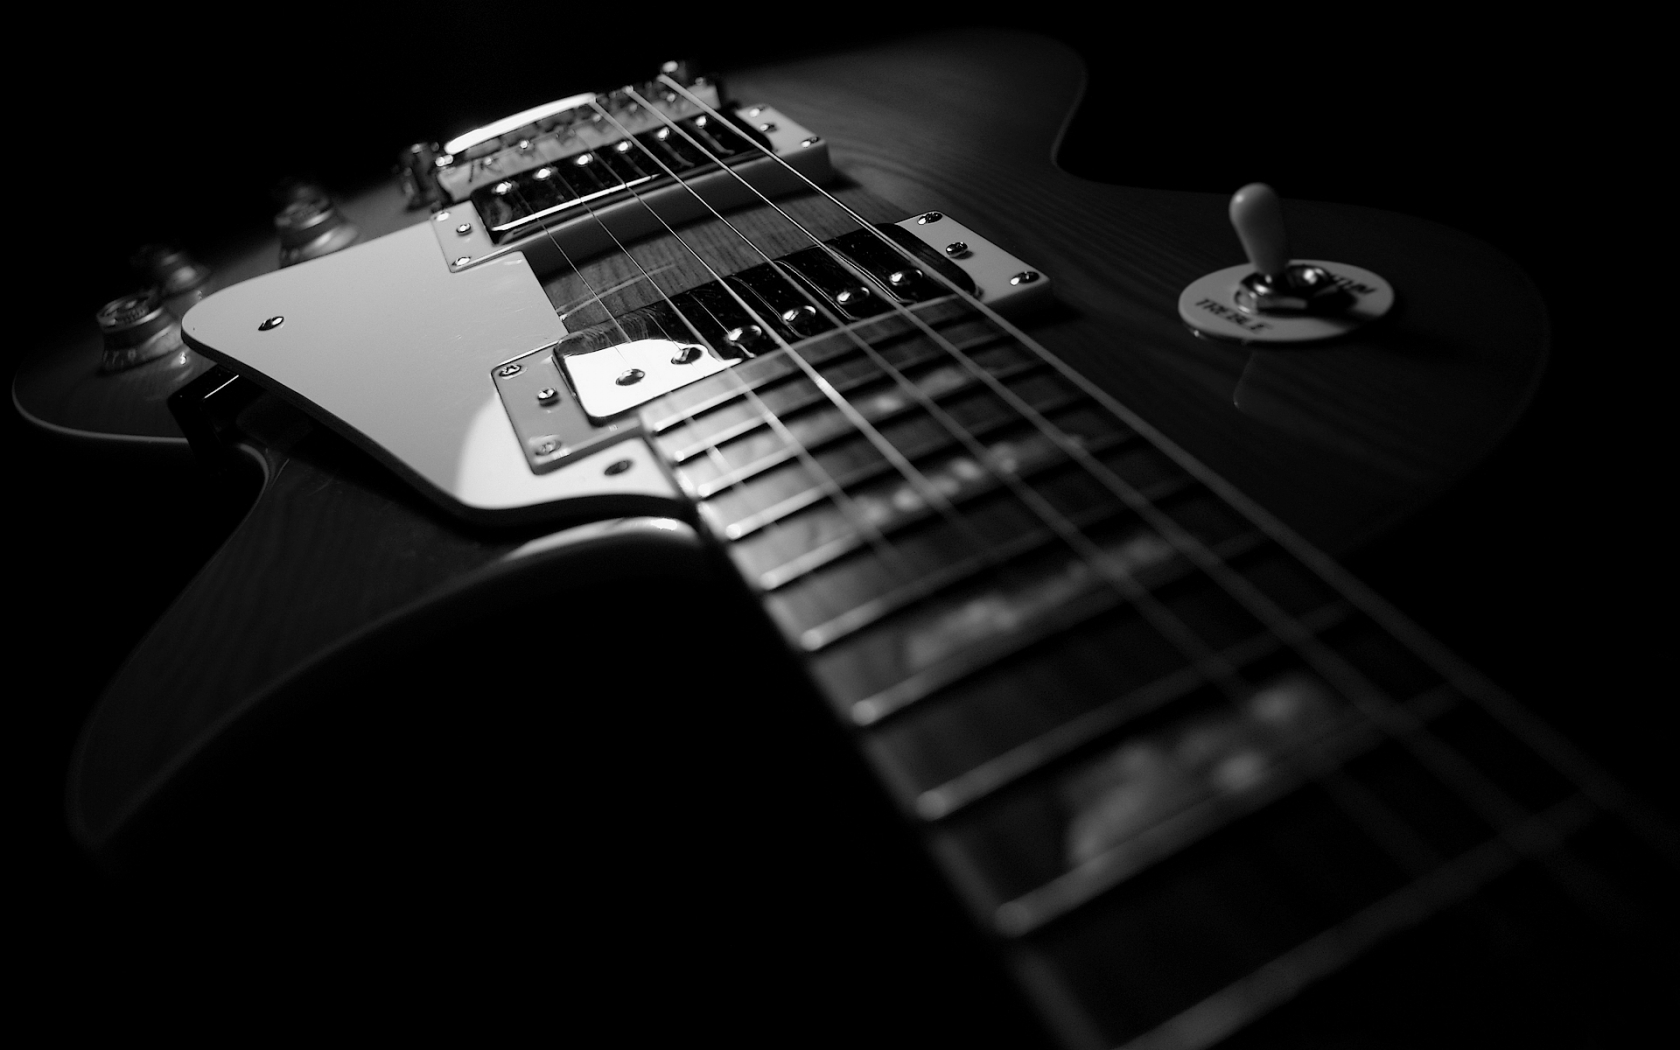 Guitar Awesome Wallpaper High Def